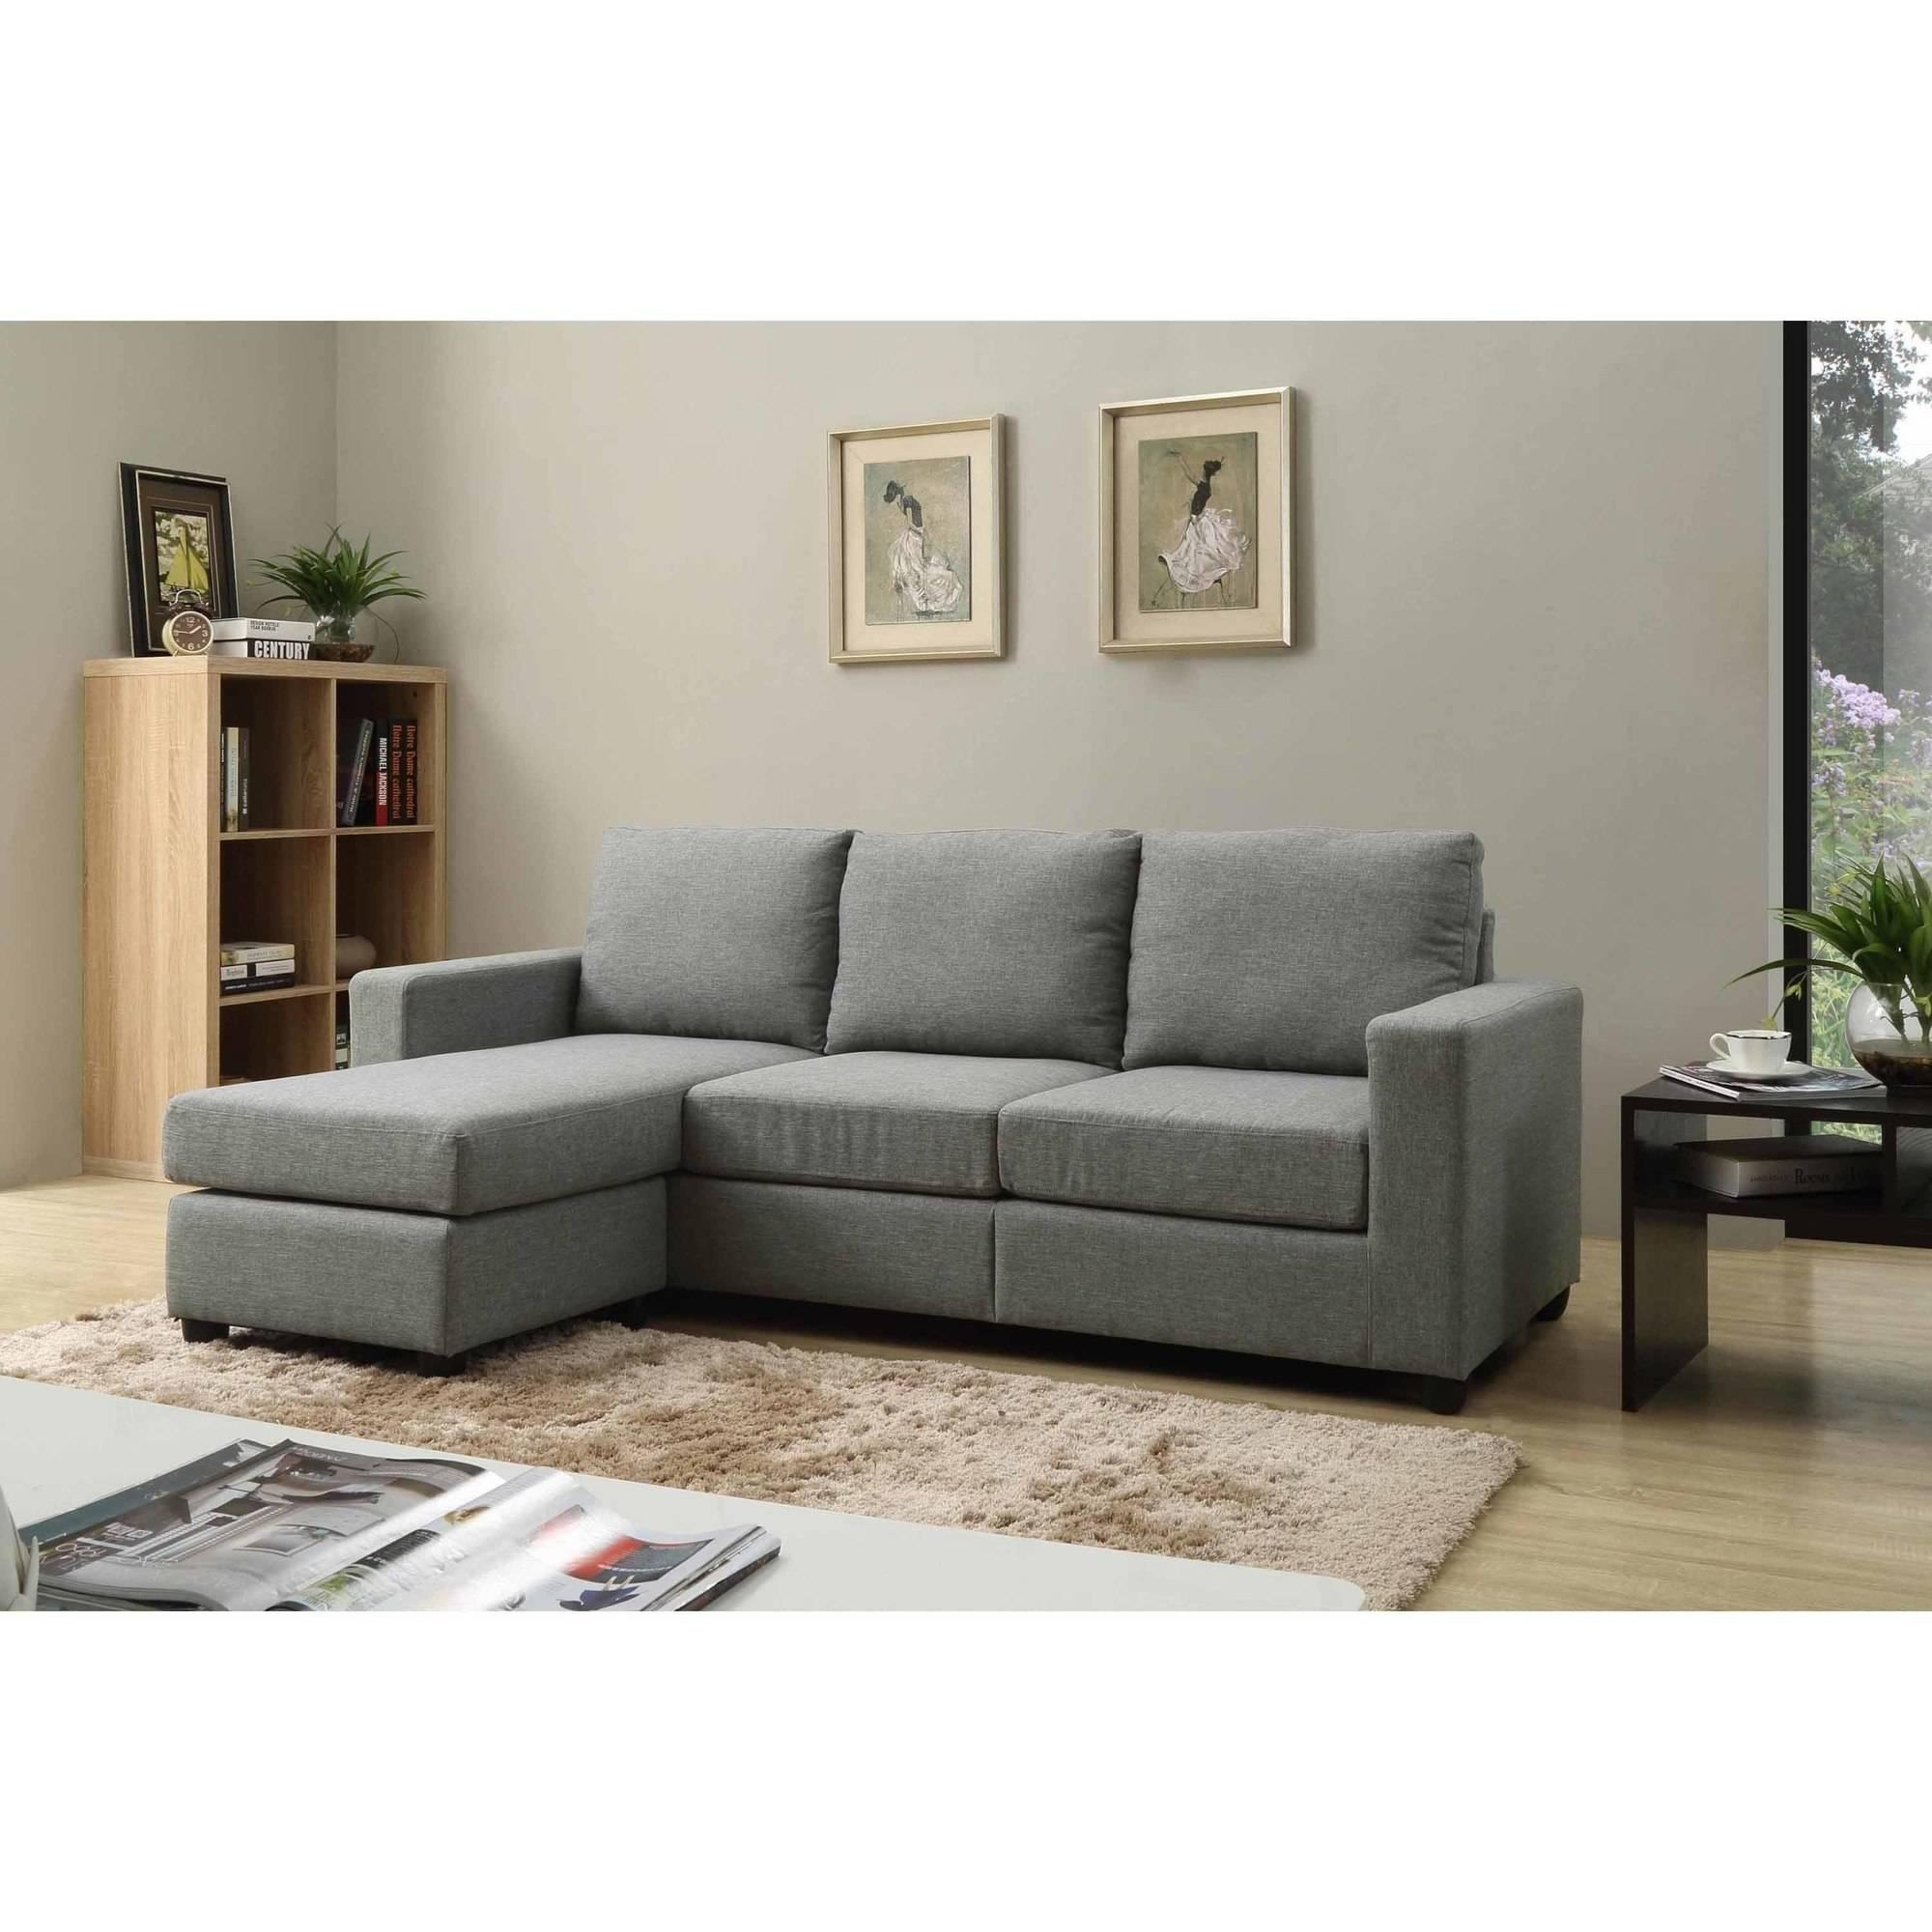 Nathaniel Home Alexandra Small Space Convertible Sectional inside Convertible Sectional